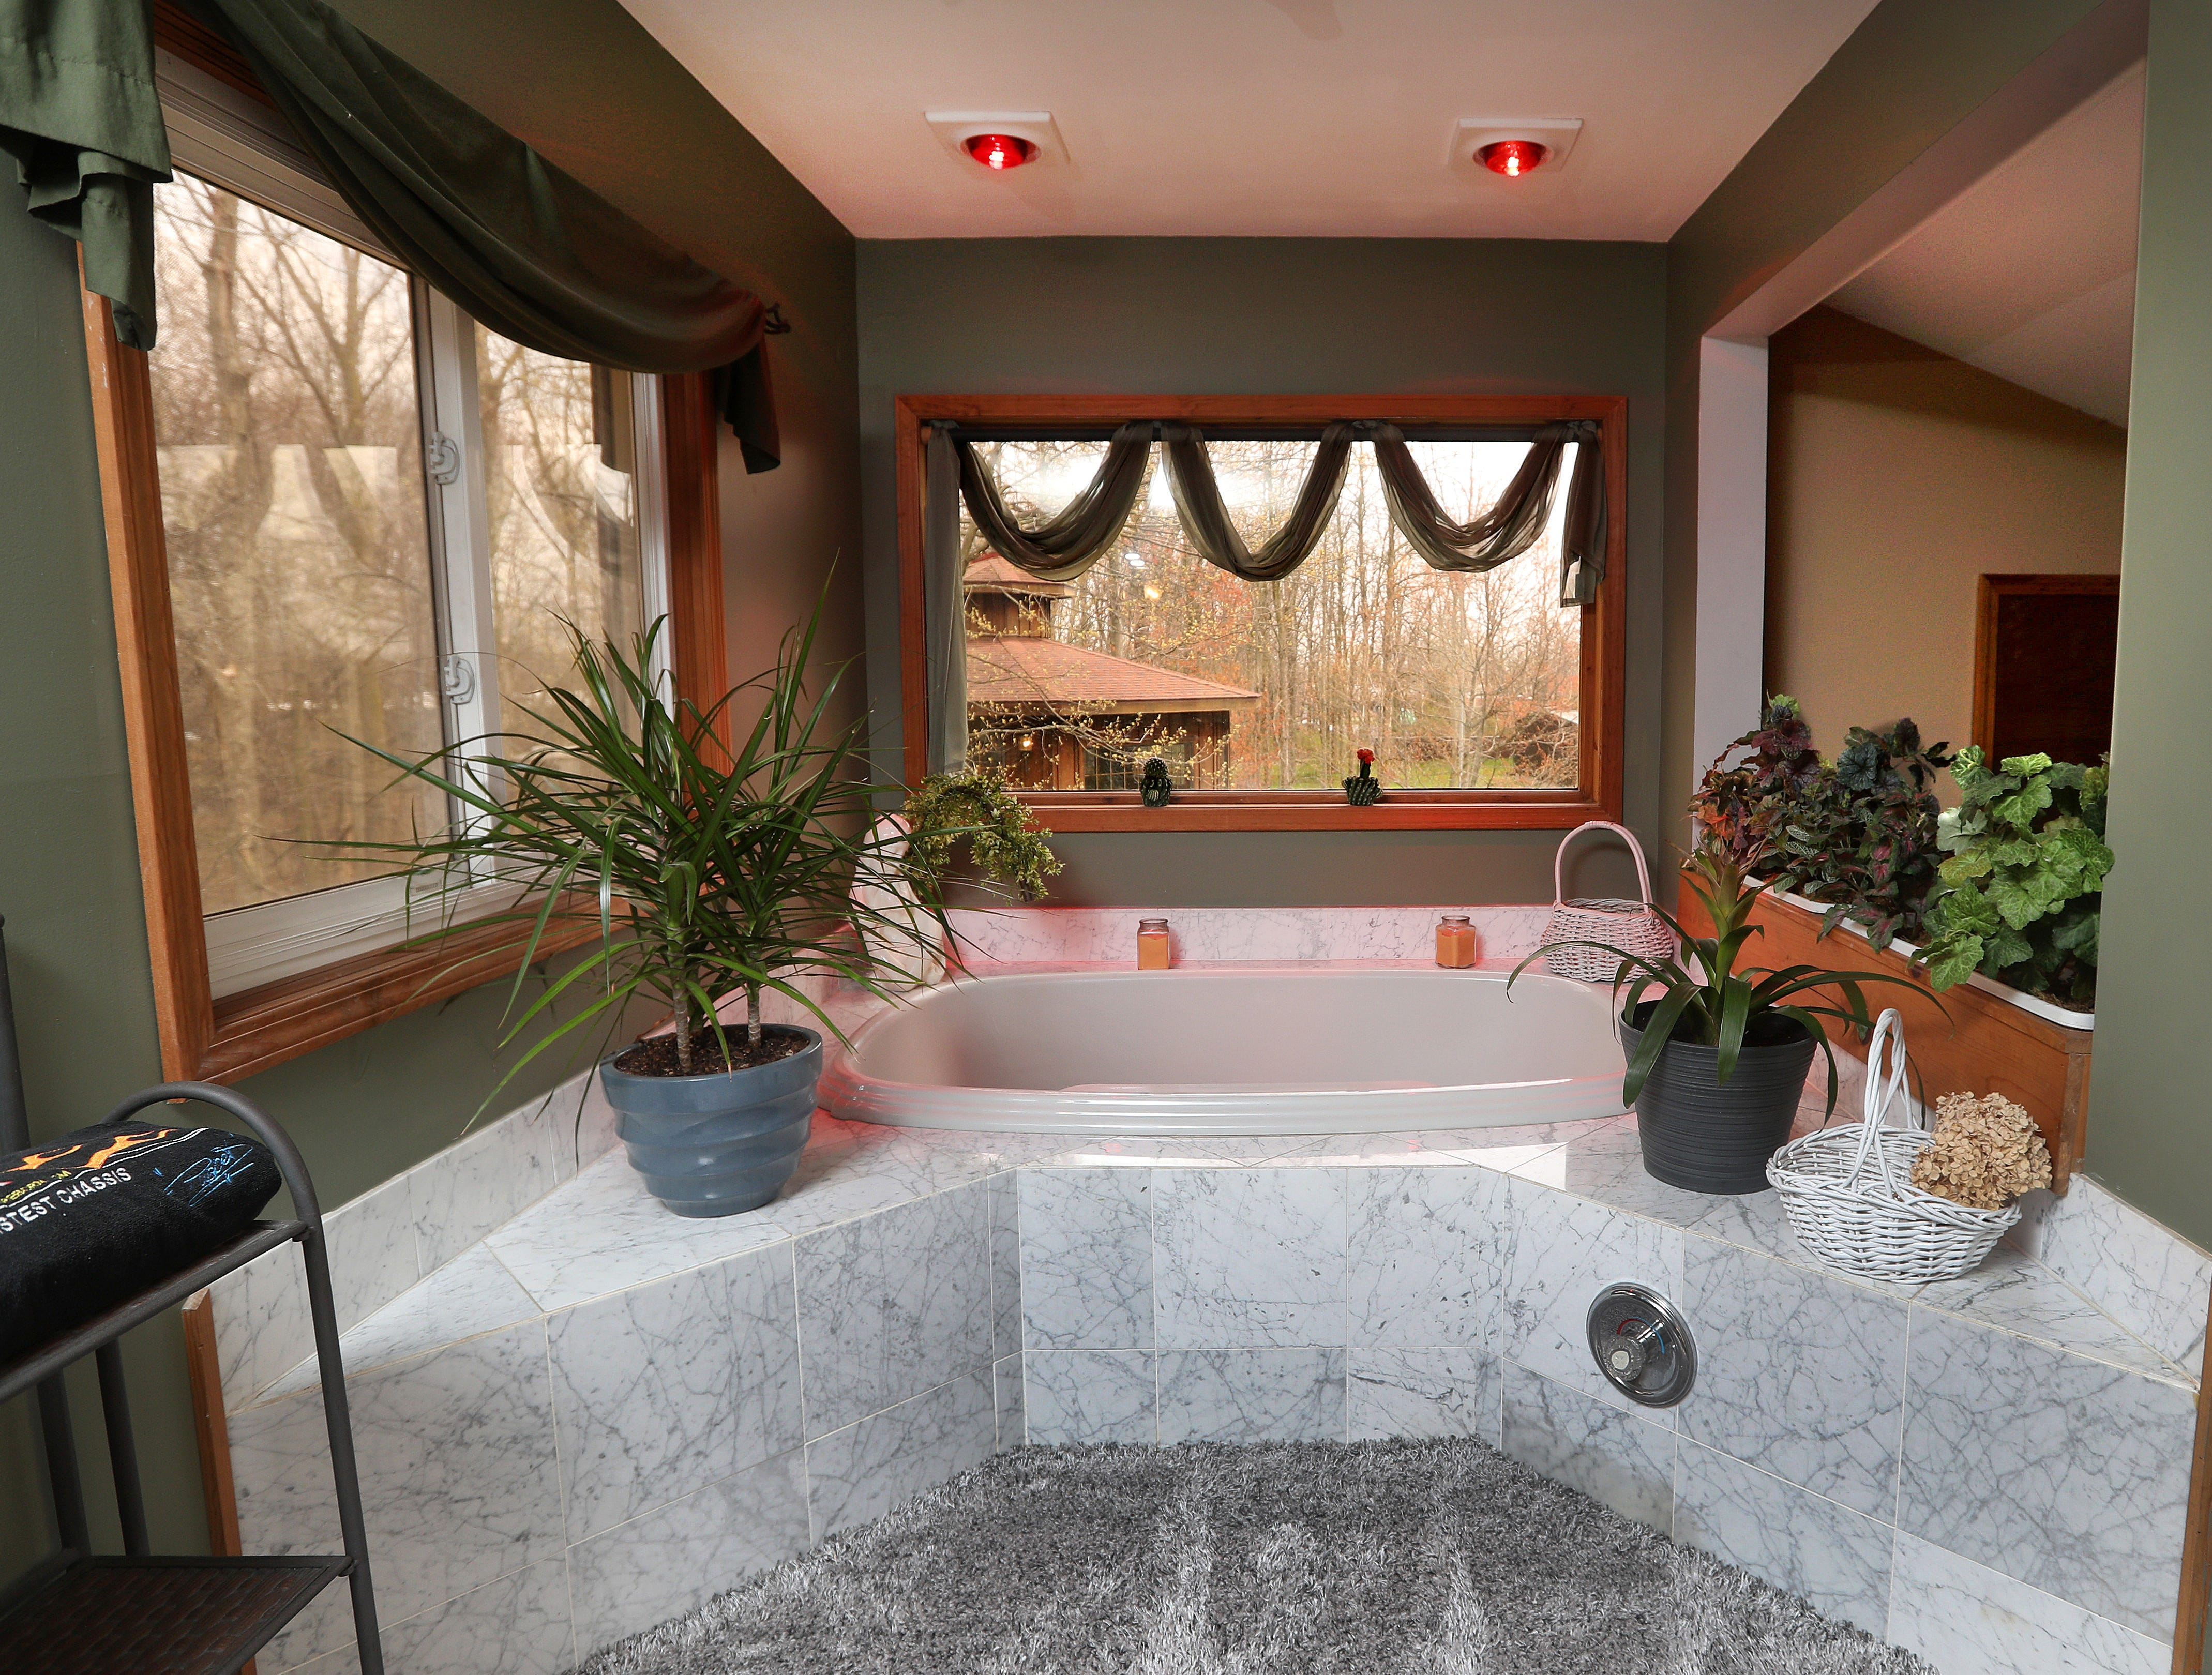 A Jacuzzi tub in the upstairs bathroom.